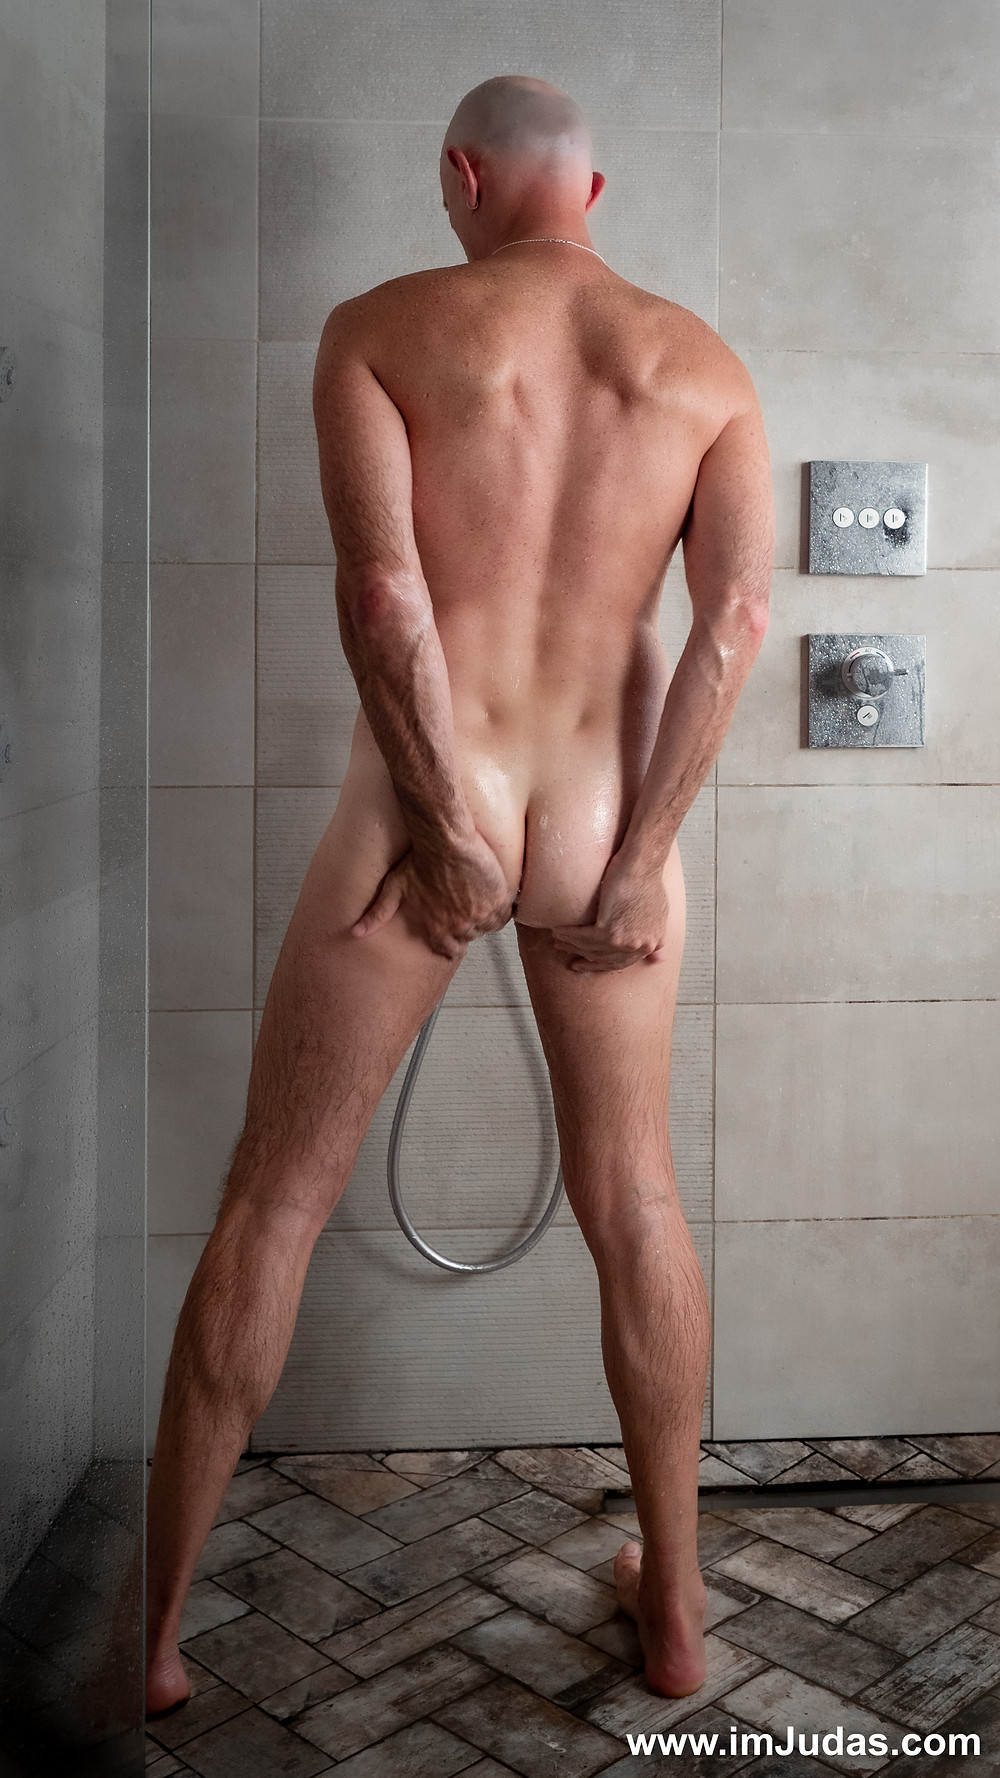 Playing with my love hole during my morning shower